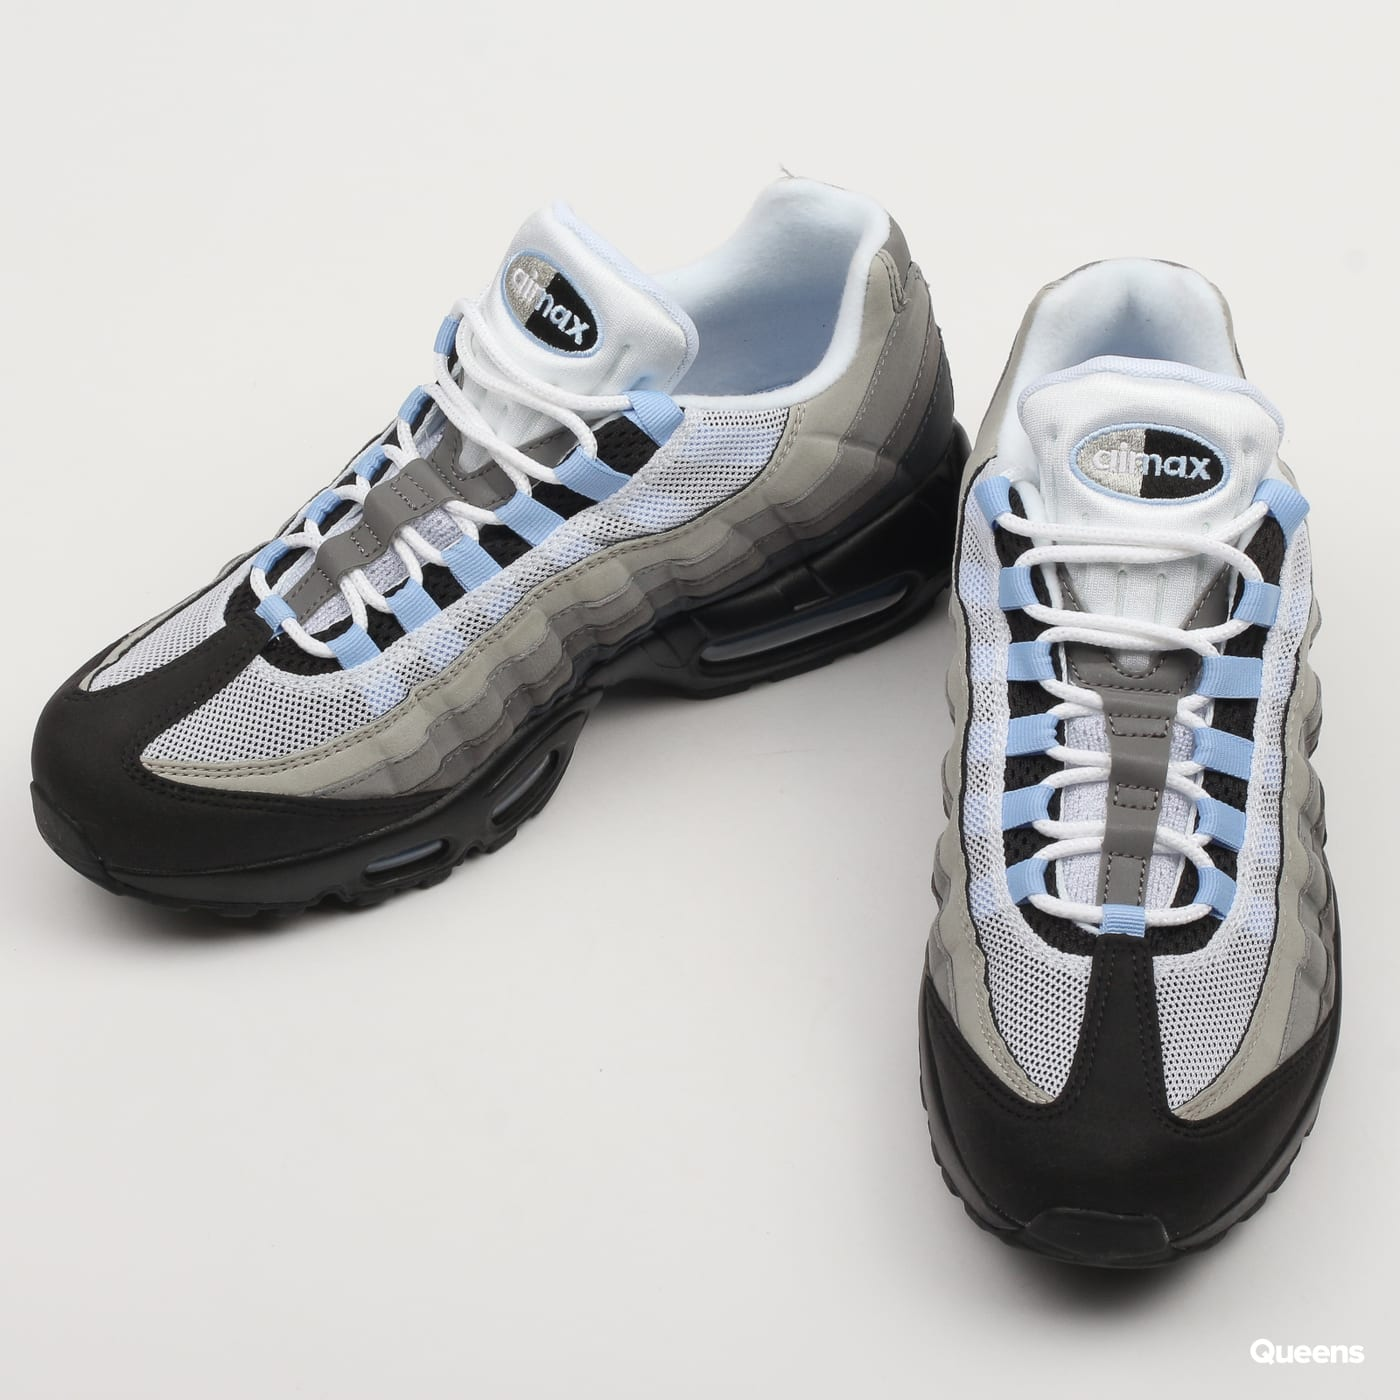 b7b423fa0 Sneakers Nike Air Max 95 black / aluminum - anthracite (CD1529-001 ...